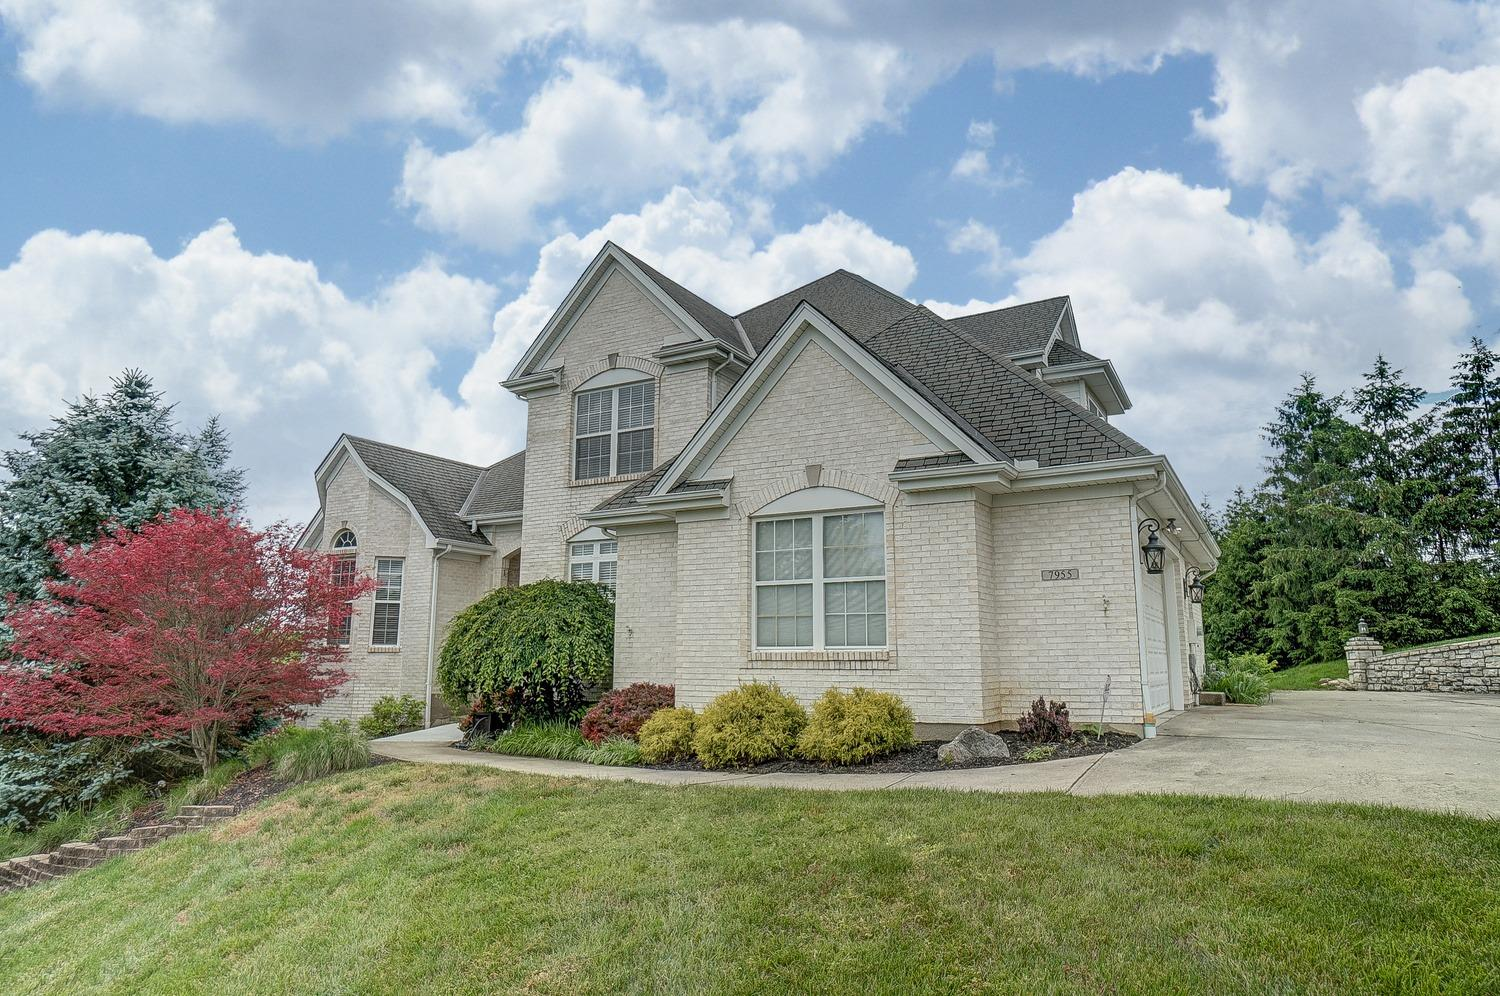 Property for sale at 7955 Spring Leaf Drive, Colerain Twp,  Ohio 45247